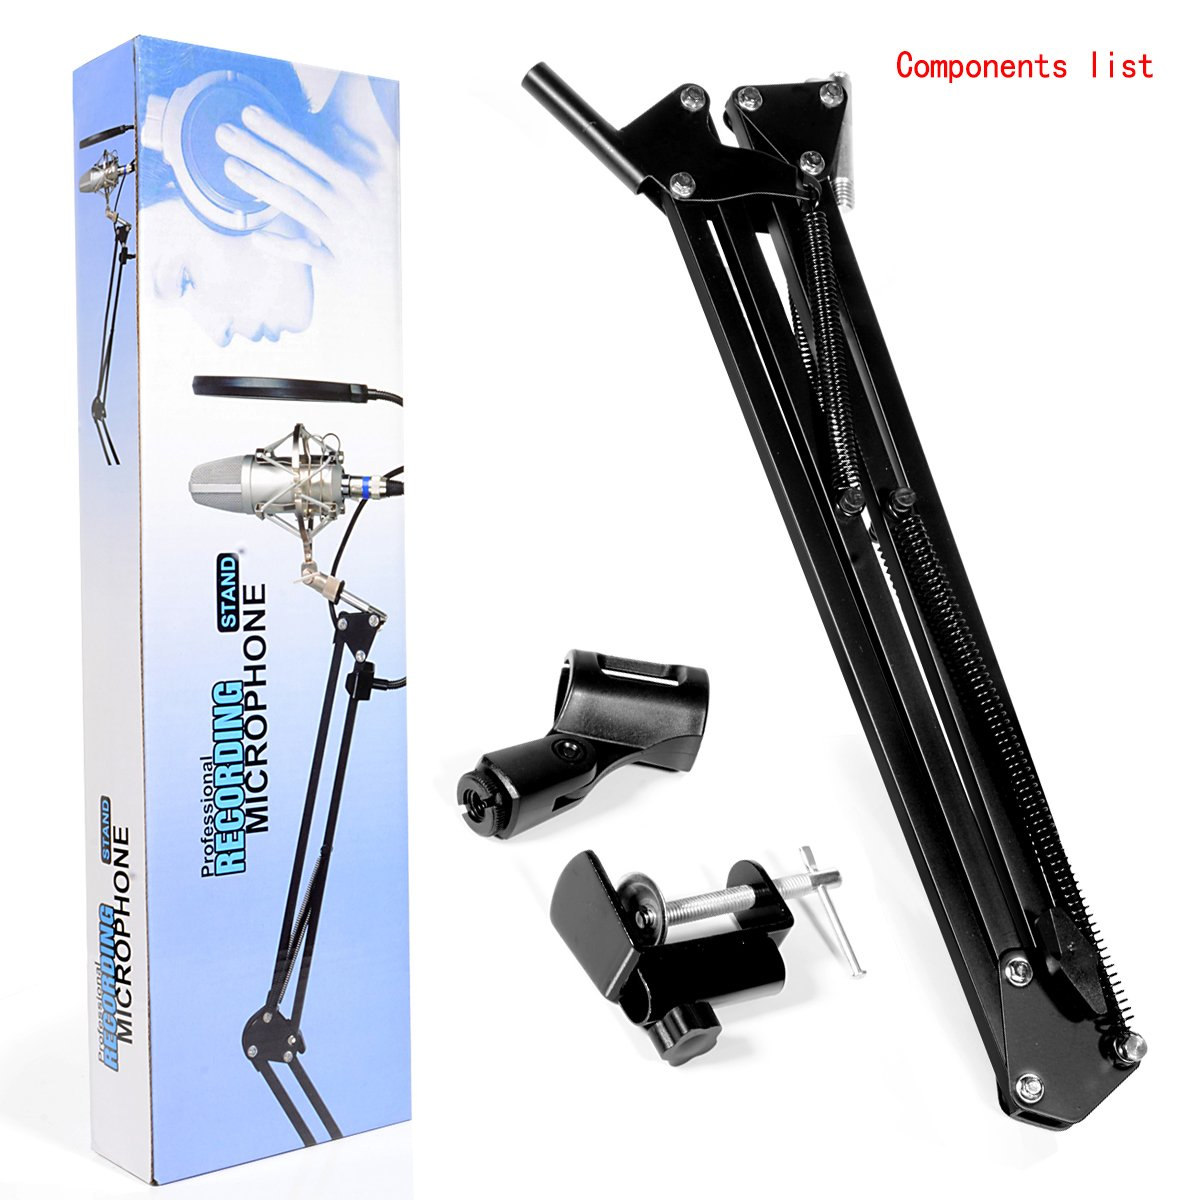 Arm Microphone Stand, Microphone Adjustable Desk Suspension Boom Scissor Arm with Mic Clip Holder and Table Mounting Clamp, featured Microphone Mount for DJ, music recorder and computer PC game